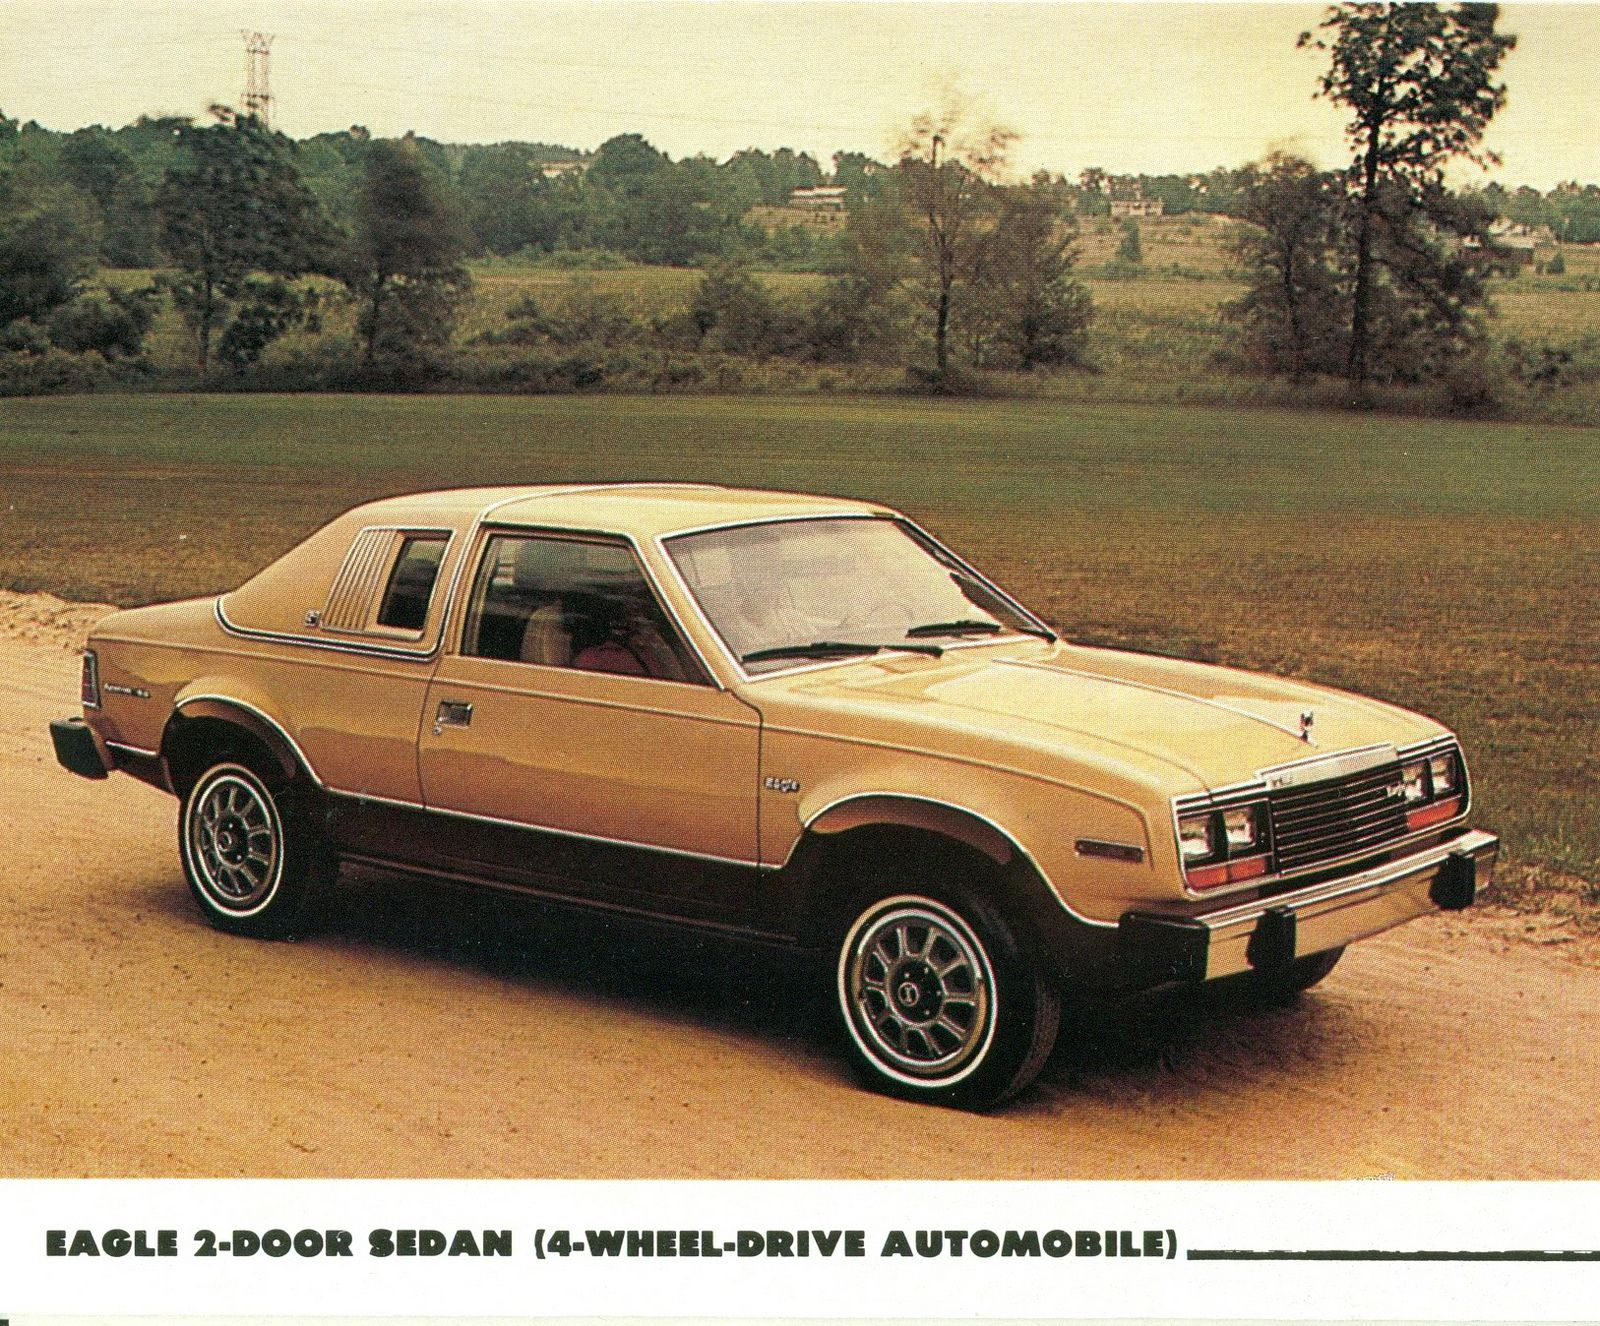 Amc Eagle Door Sedan Sedans American Motors And Cars